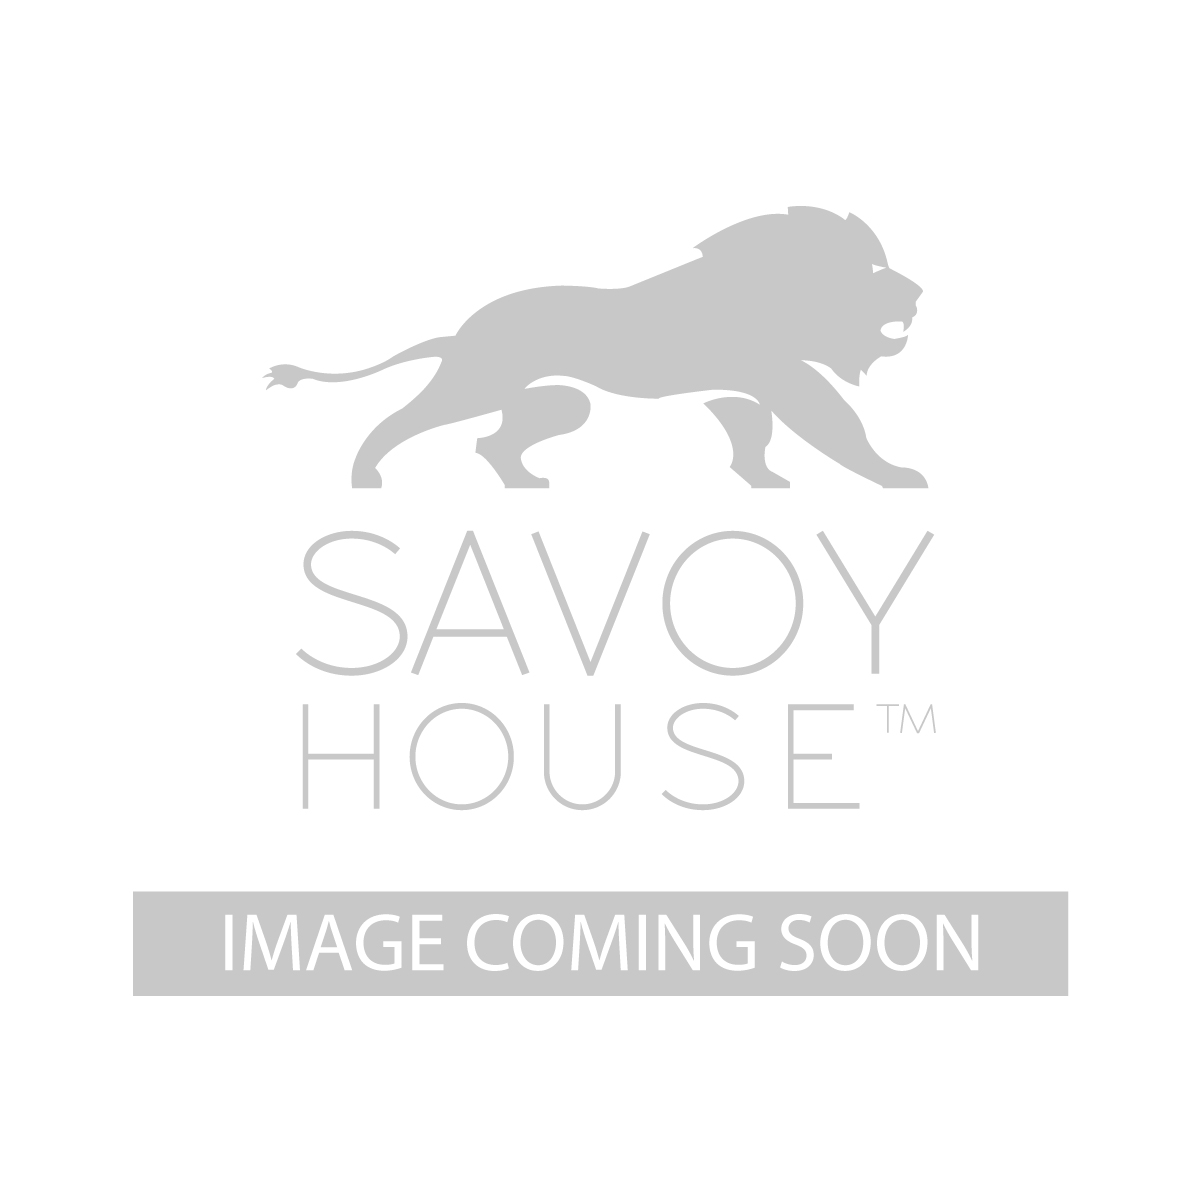 1 7001 12 77 Lyrique 12 Light Chandelier By Savoy House